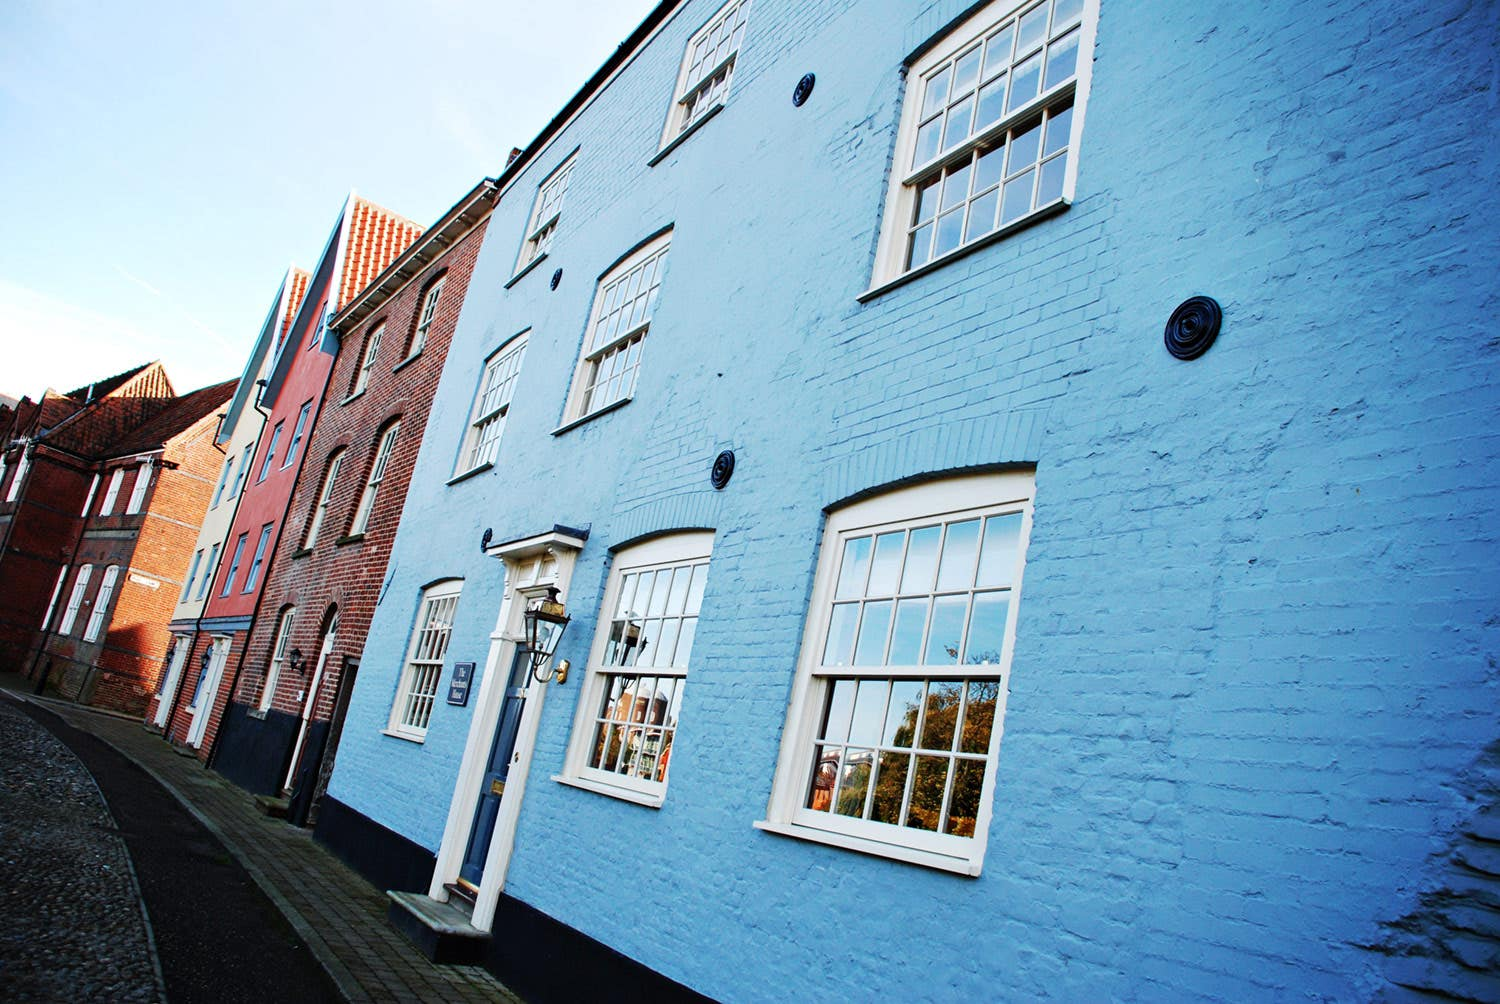 A row of colourful buildings photographed at a tilt from the side